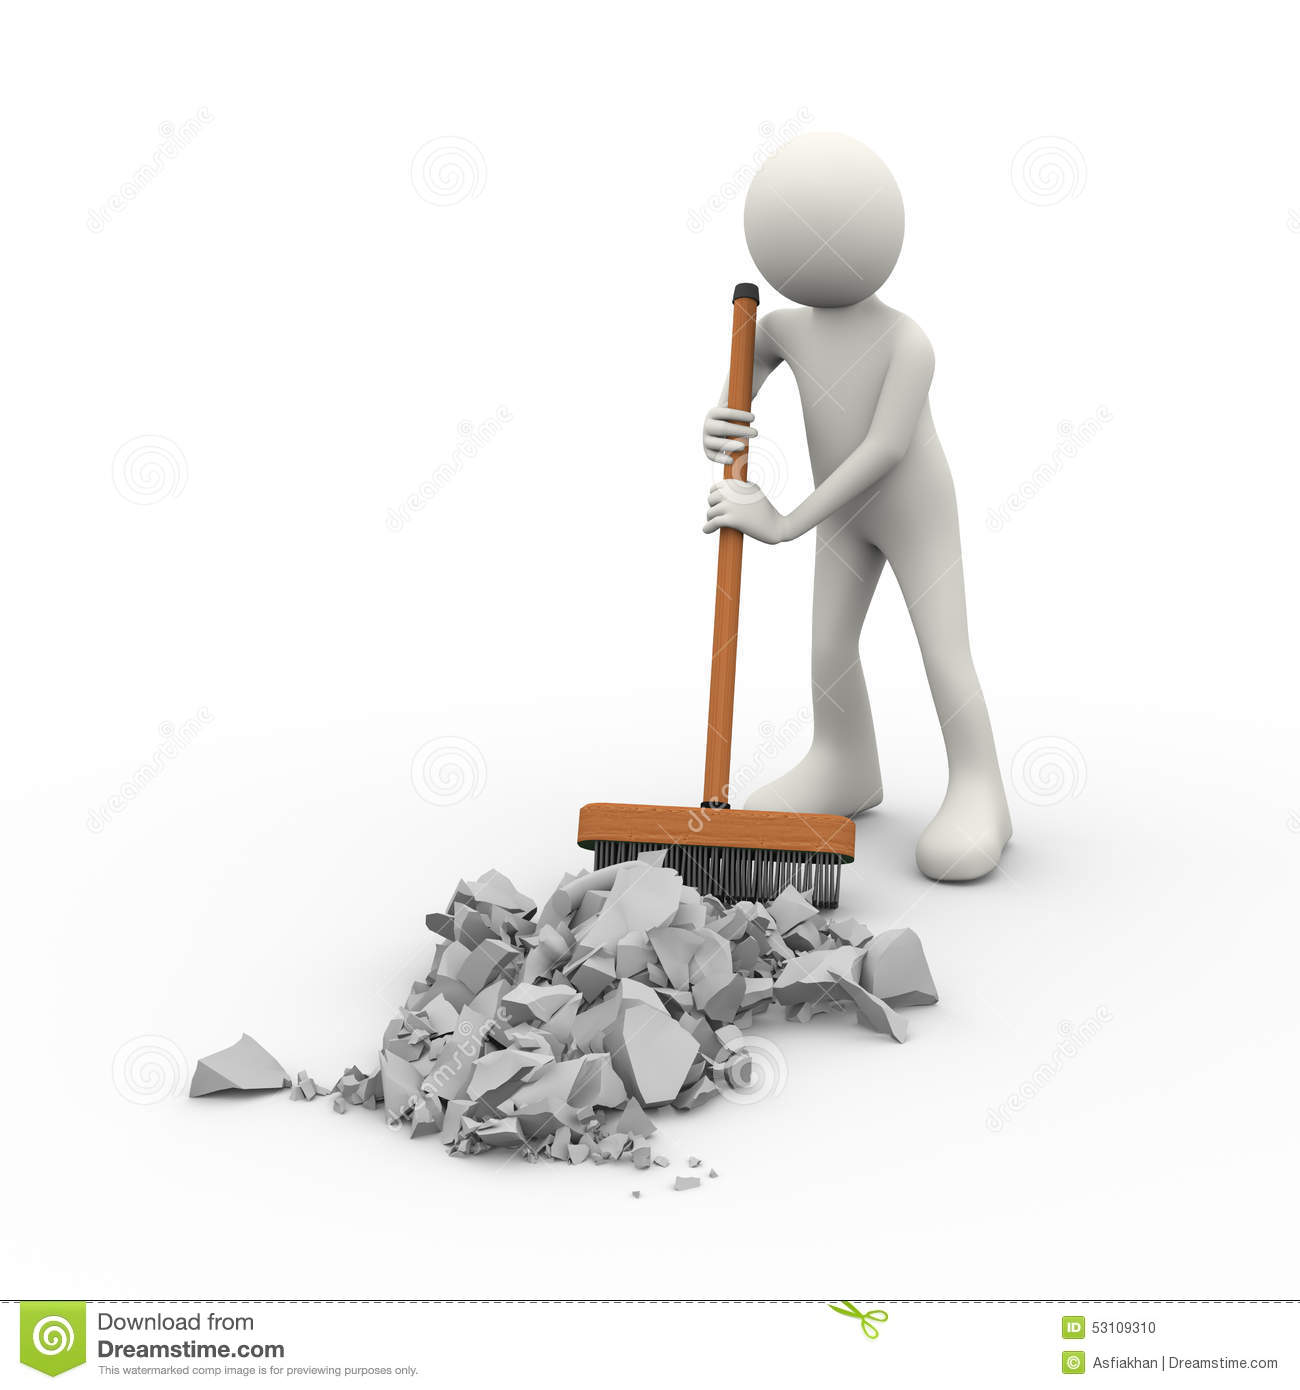 Floor Plans Architecture 3d Person Cleaning With Broom Deck Stick Brush Stock